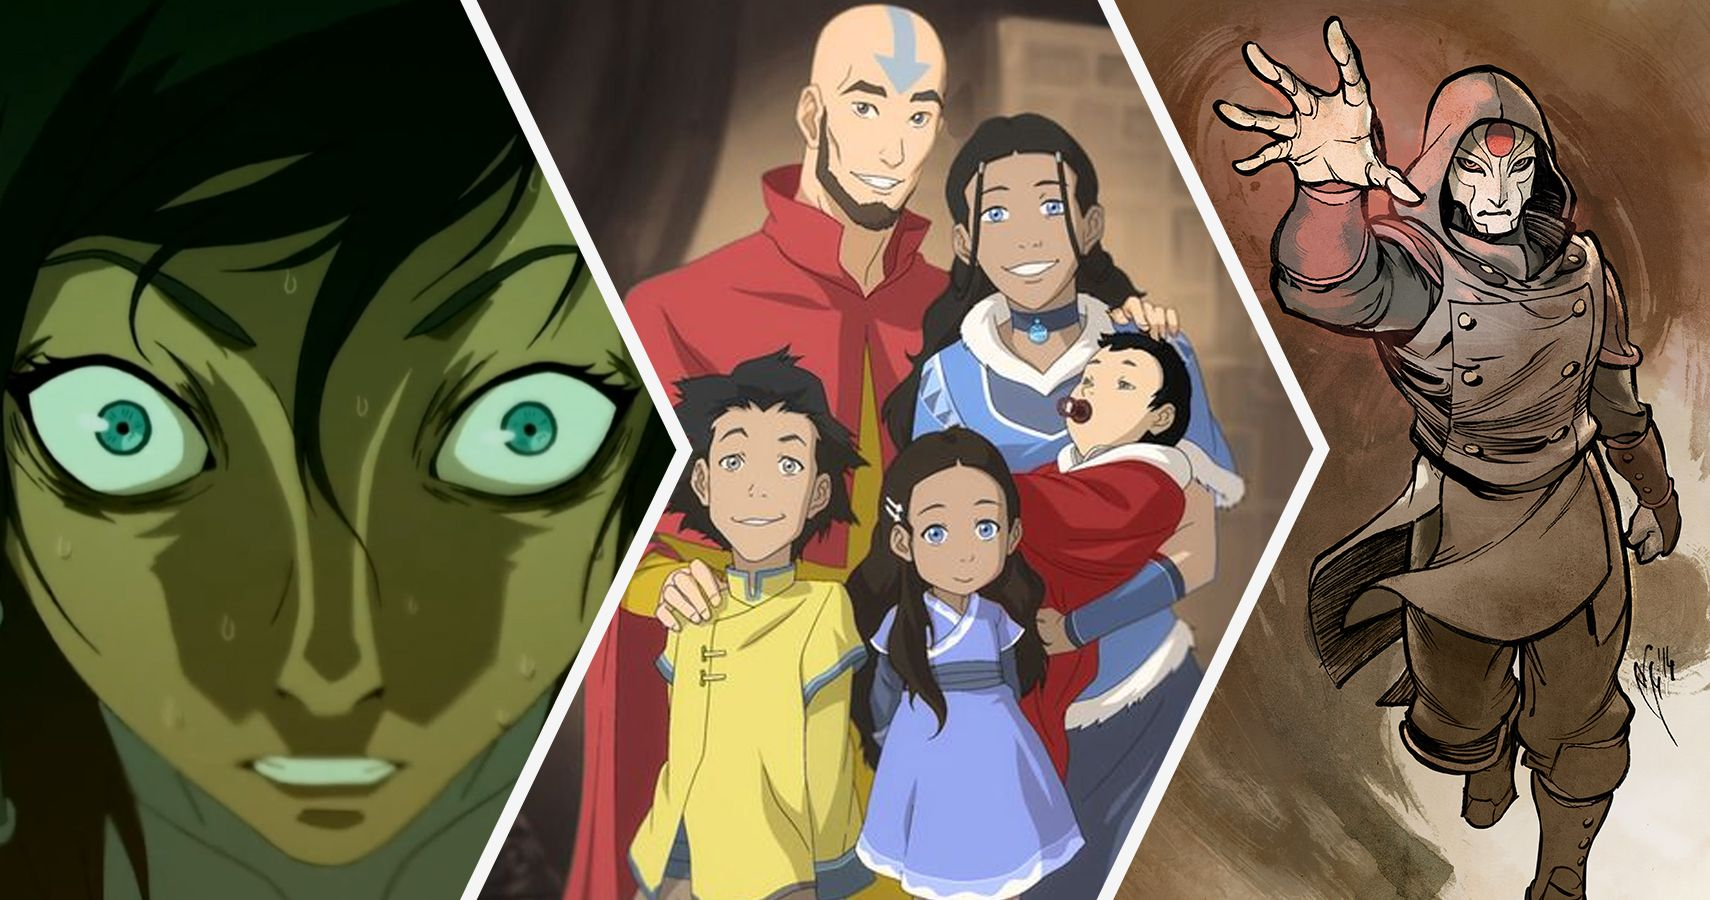 20 wild fan theories from the avatar universe that make too much sense